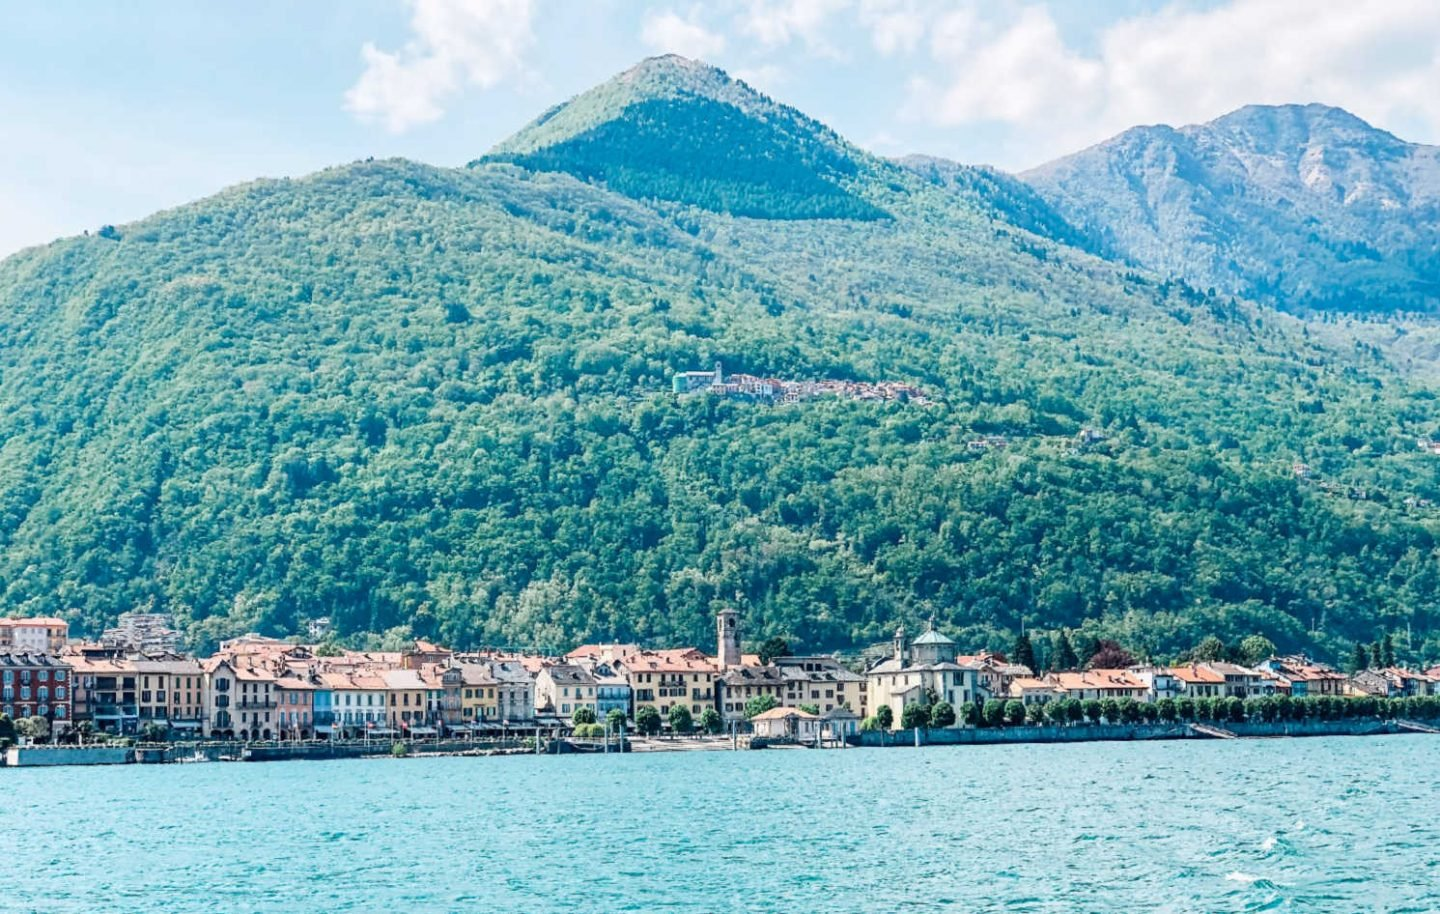 A view of Cannobio On Lake Maggiore from the water